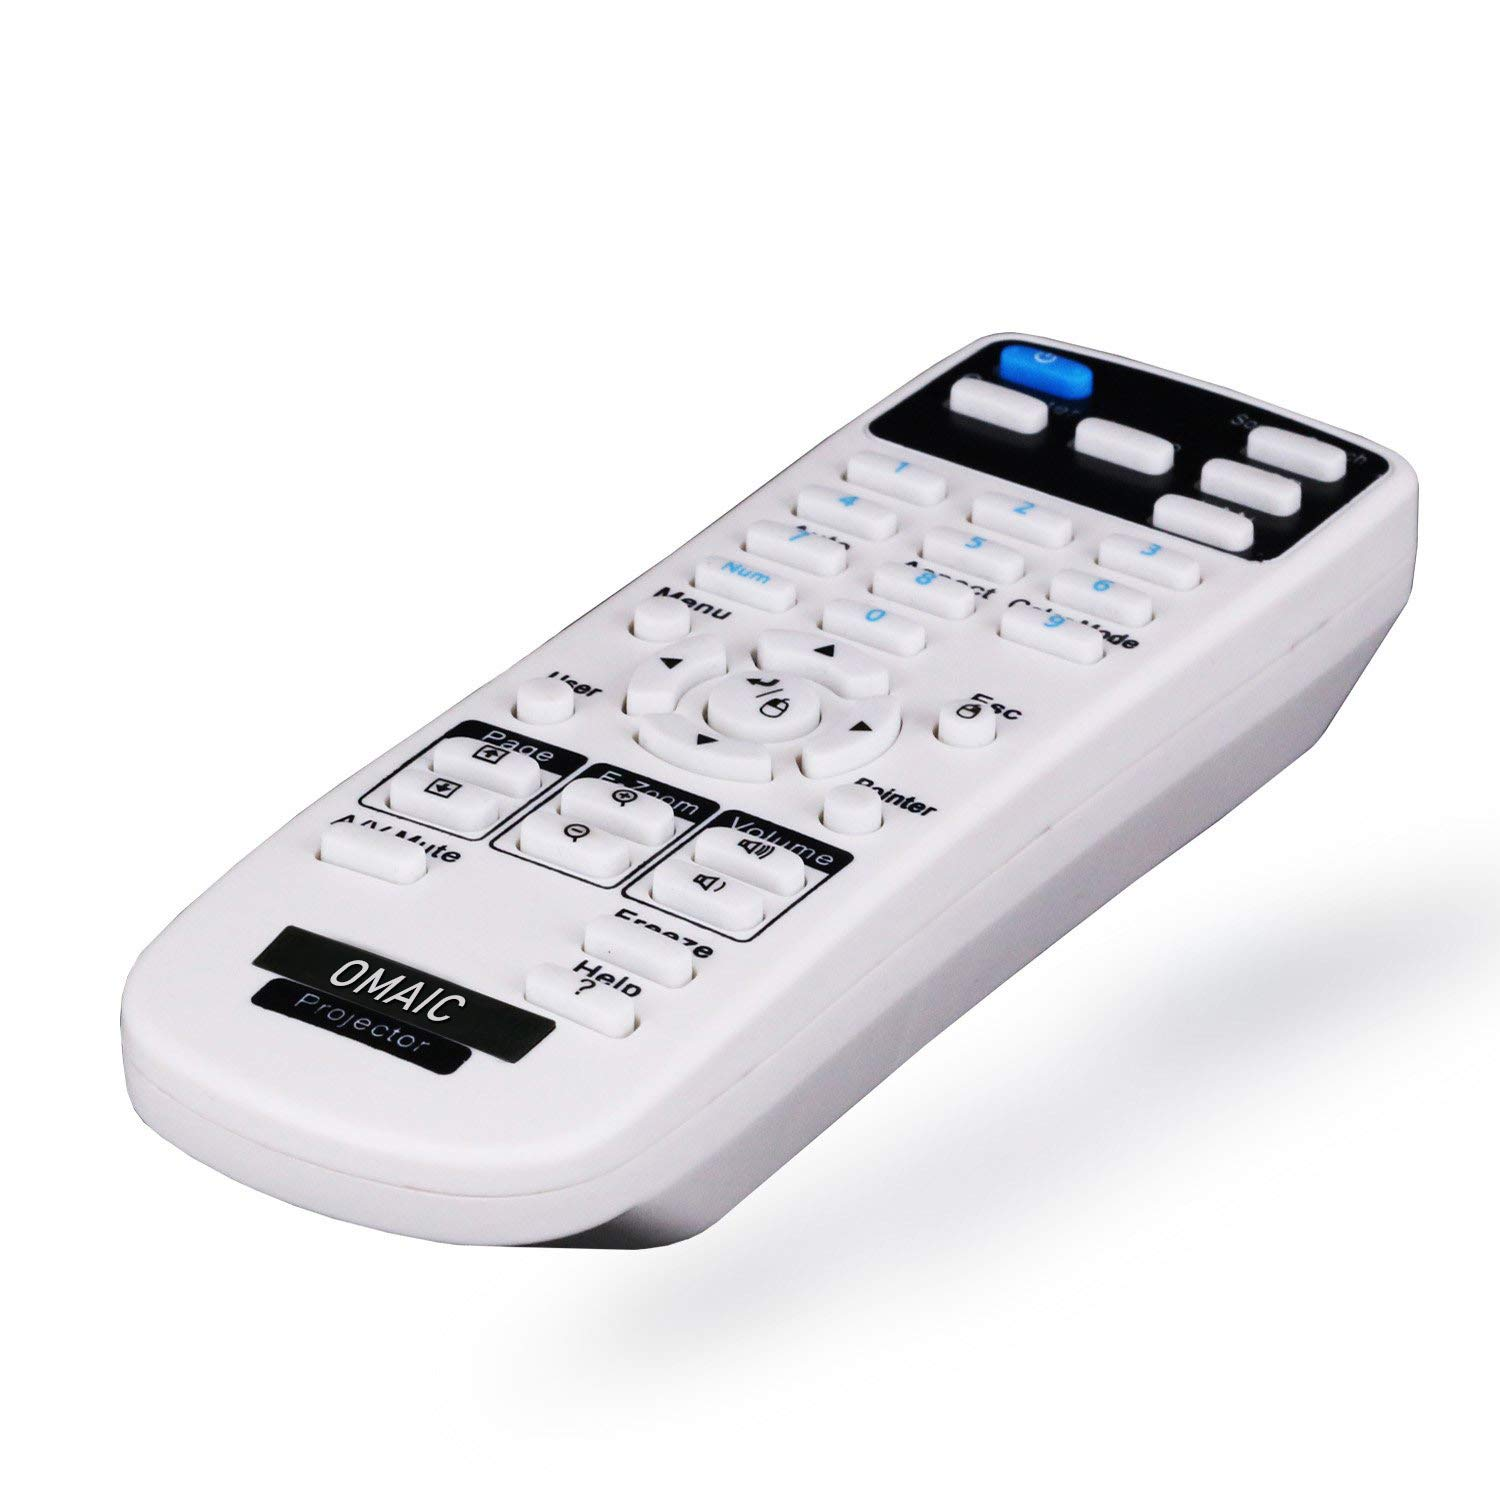 OMAIC Projector Remote Control for Epson Projectors BrightLink 575Wi, 585Wi, 595Wi Bright Link by OMAIC